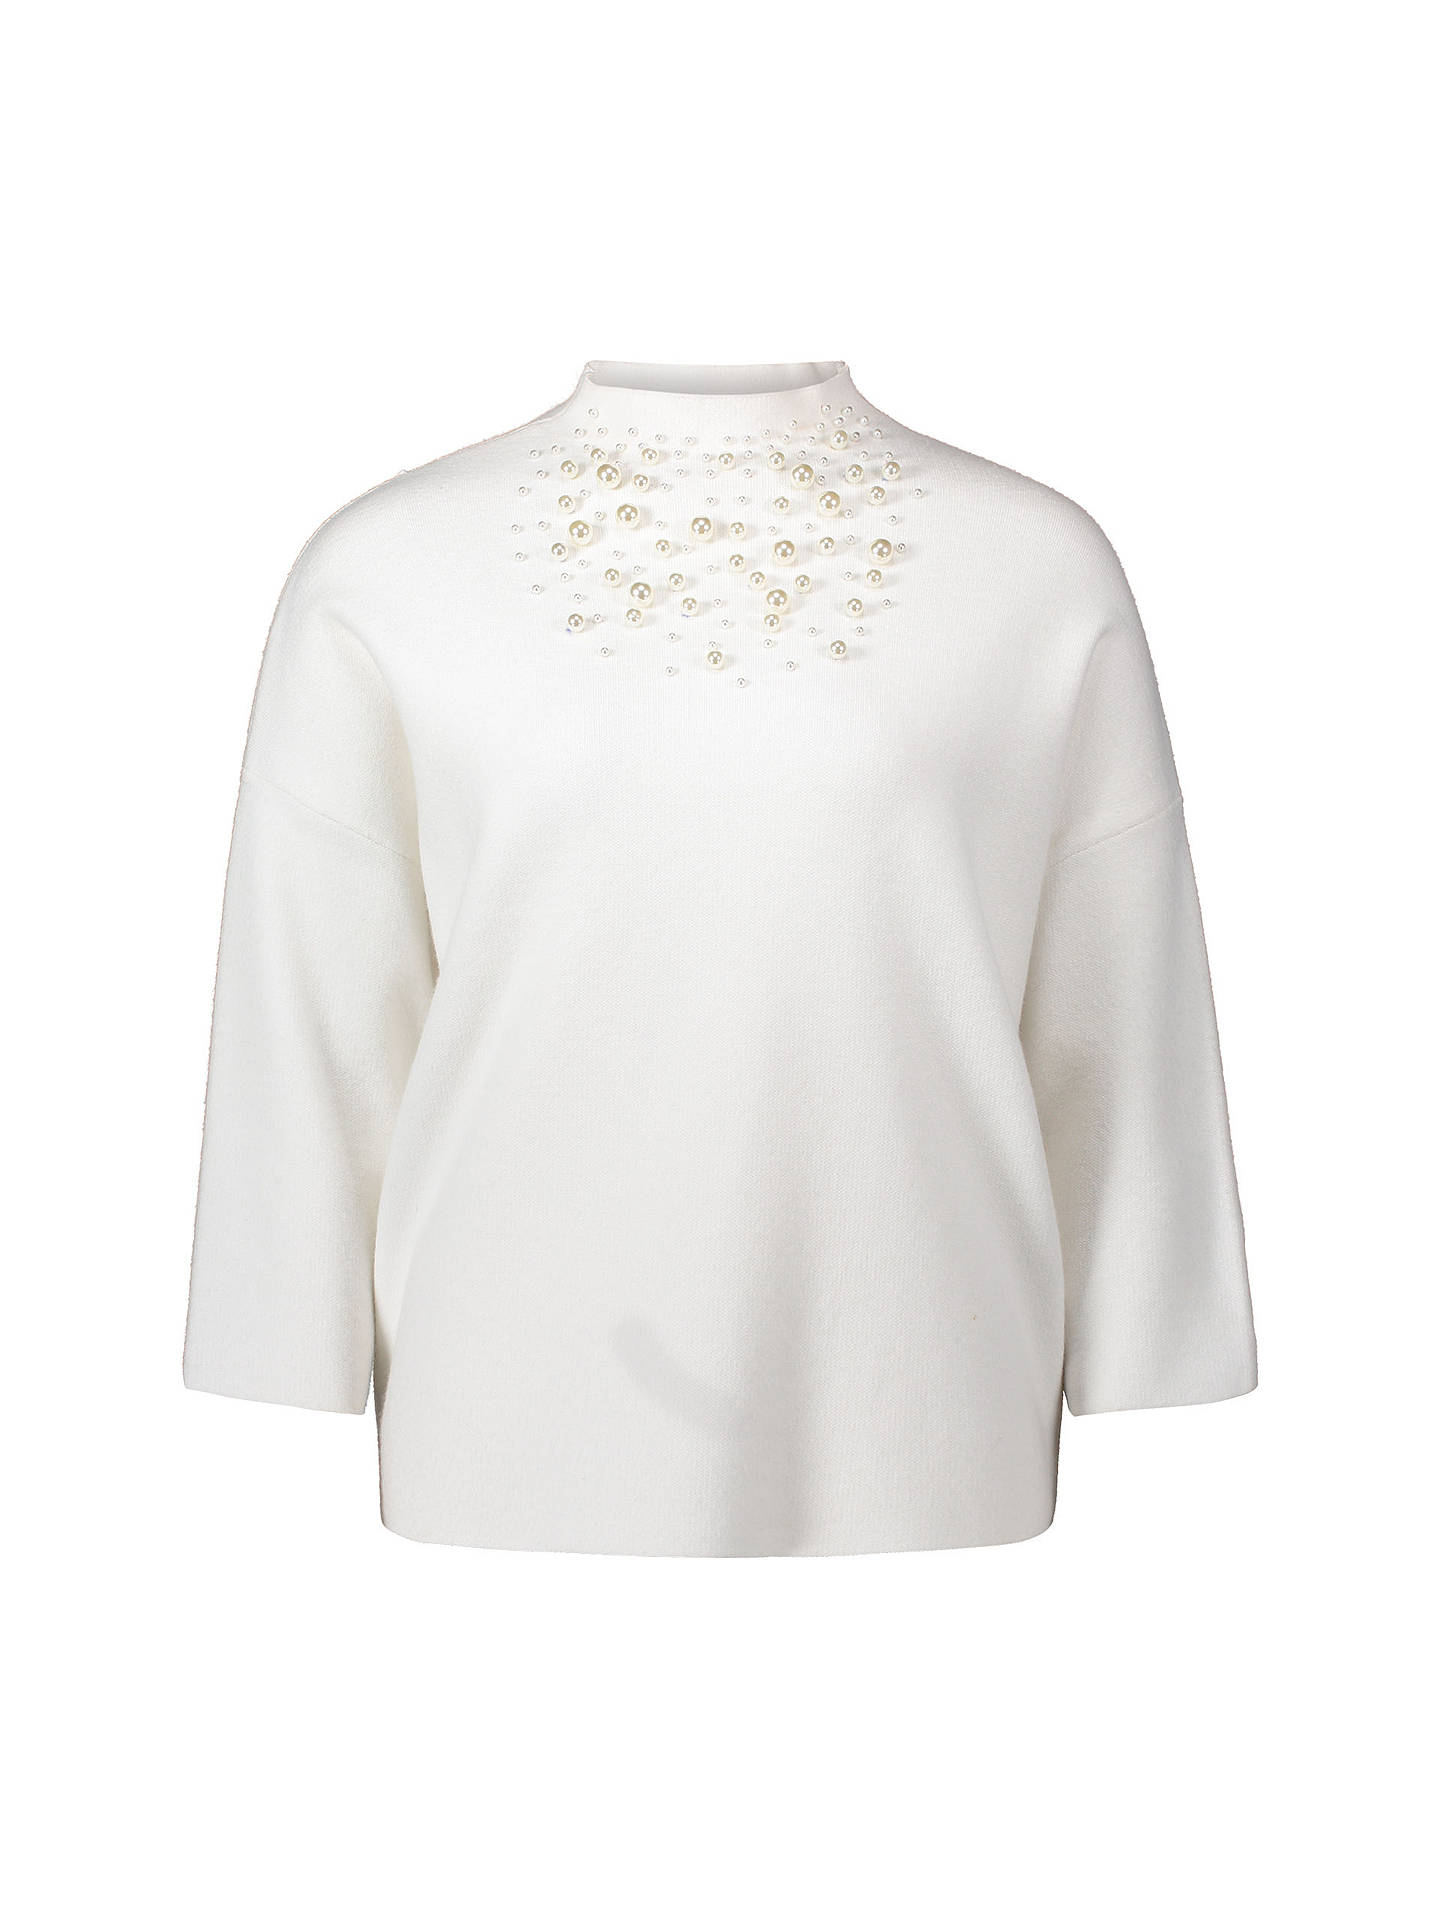 BuyBetty Barclay Pearl Embellished Knit Jumper, Offwhite, 14 Online at johnlewis.com